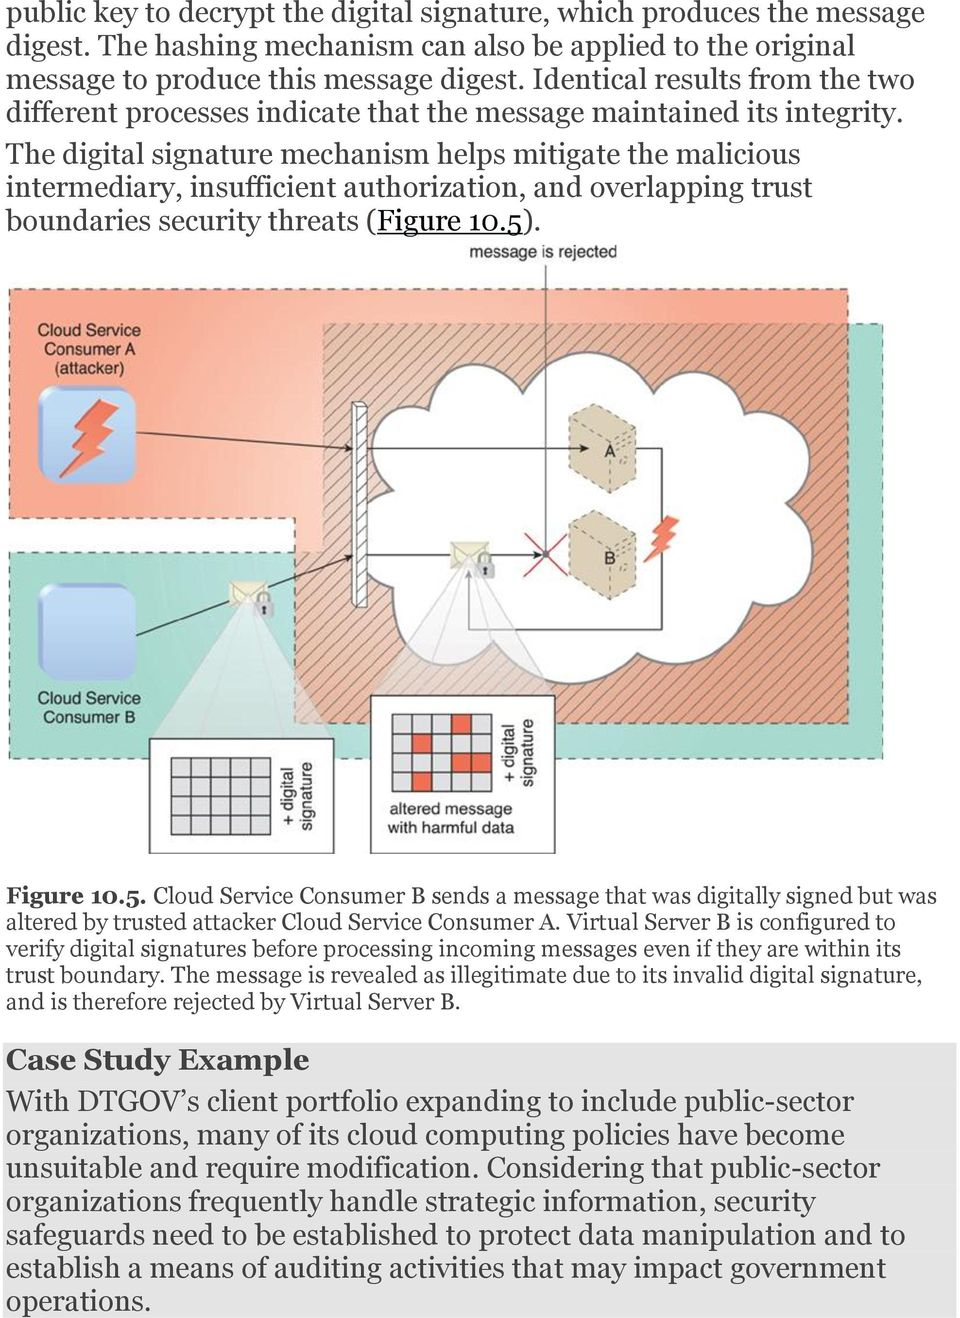 The digital signature mechanism helps mitigate the malicious intermediary, insufficient authorization, and overlapping trust boundaries security threats (Figure 10.5)